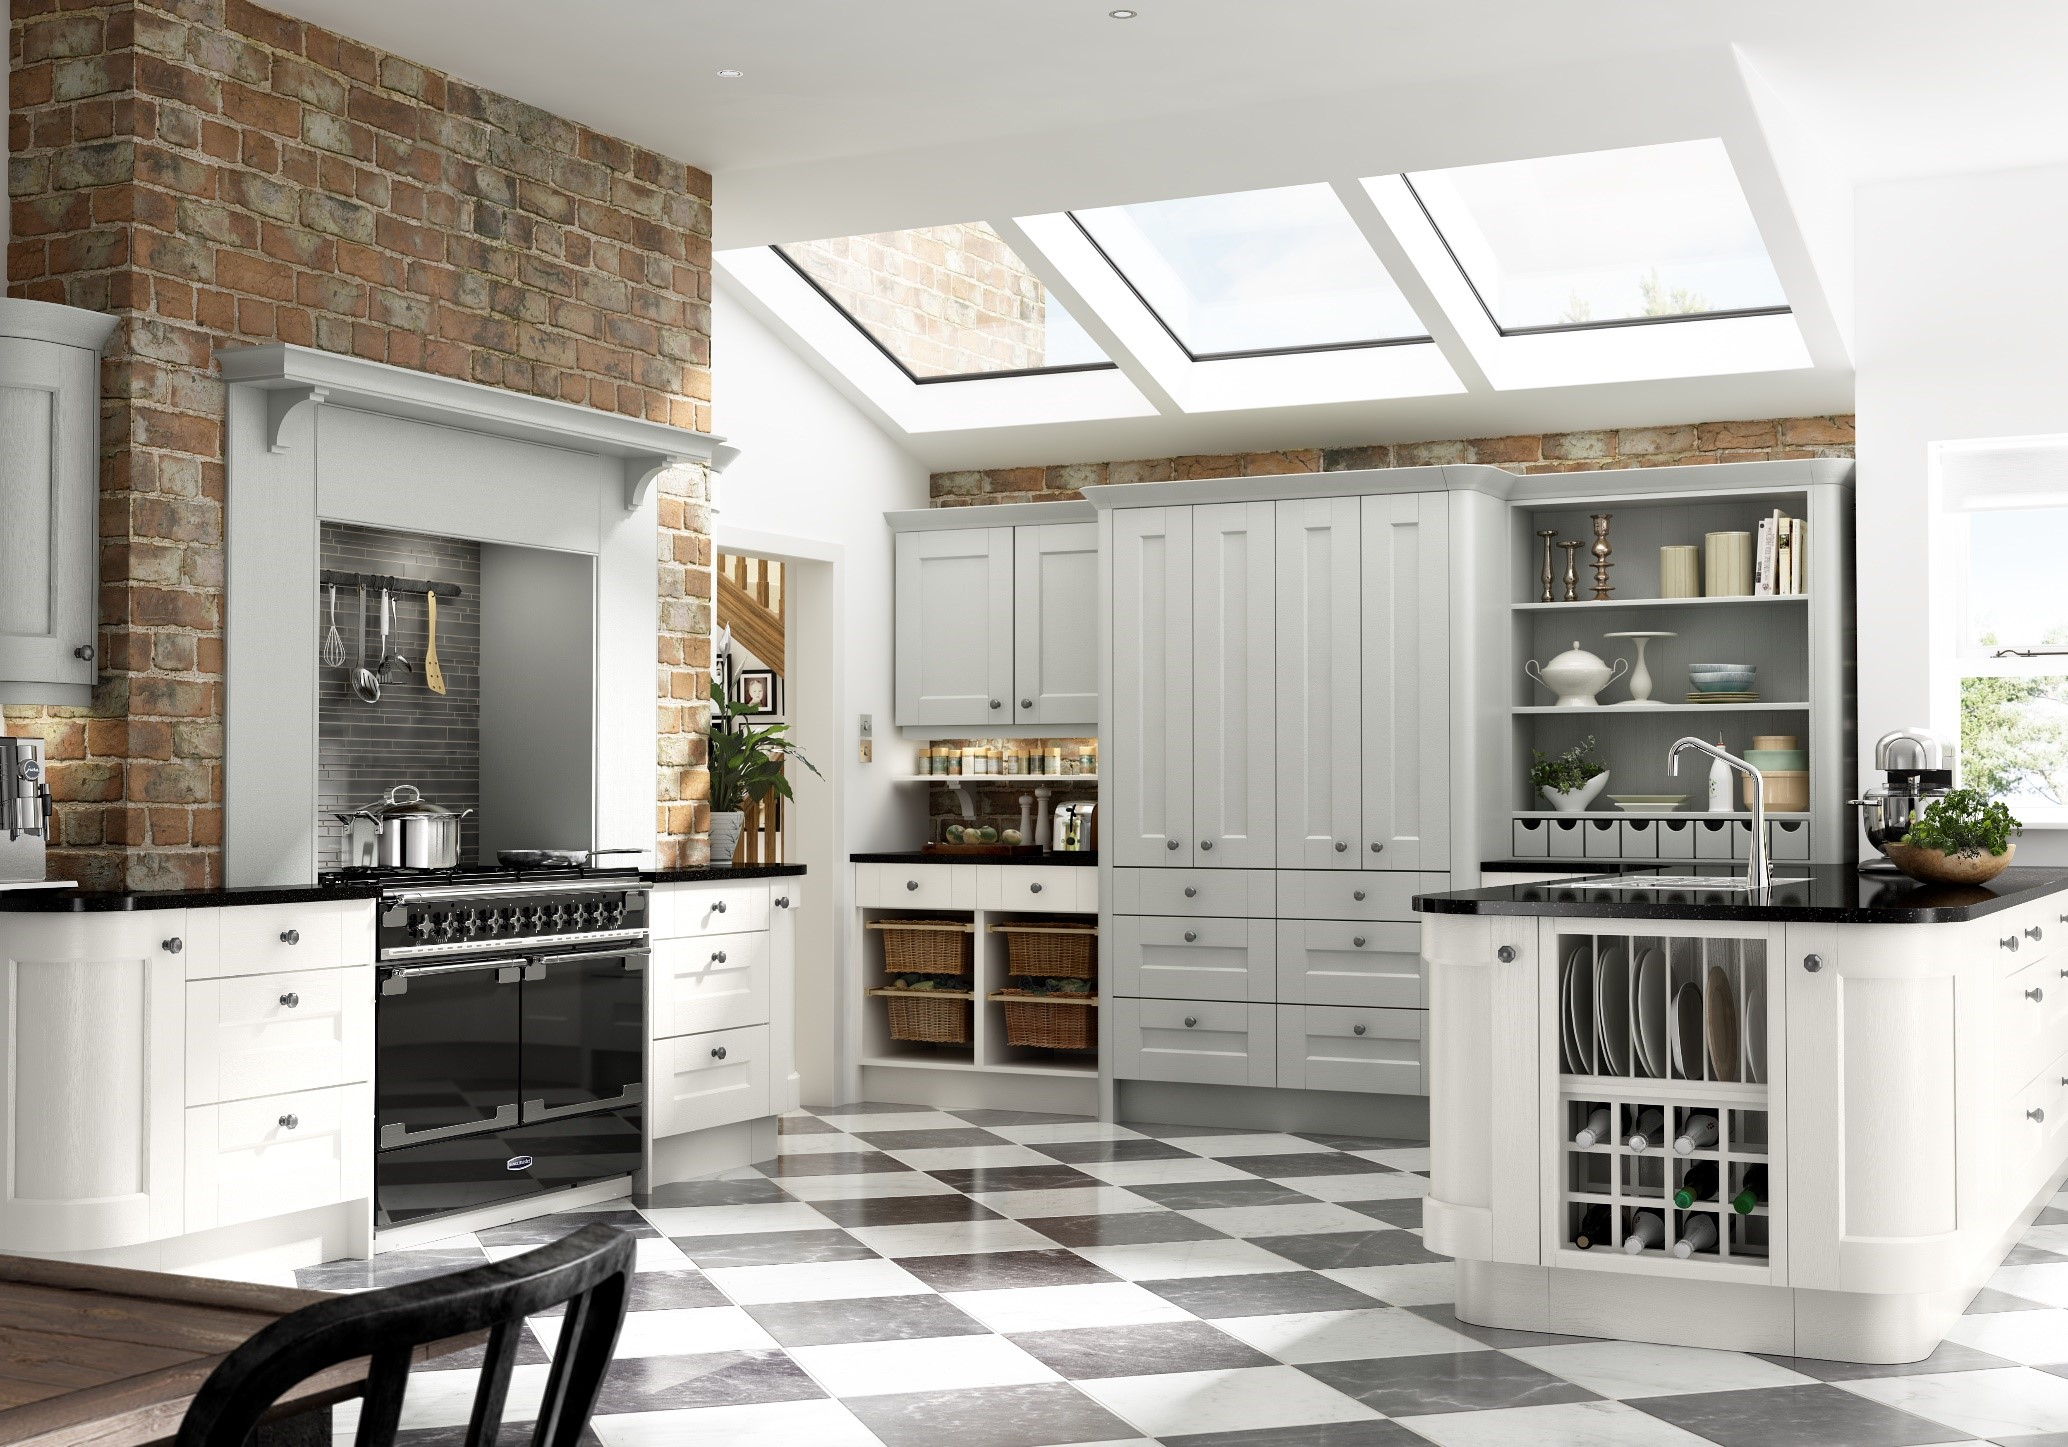 Kitchen Designer in Holt - Design Lines Cromer